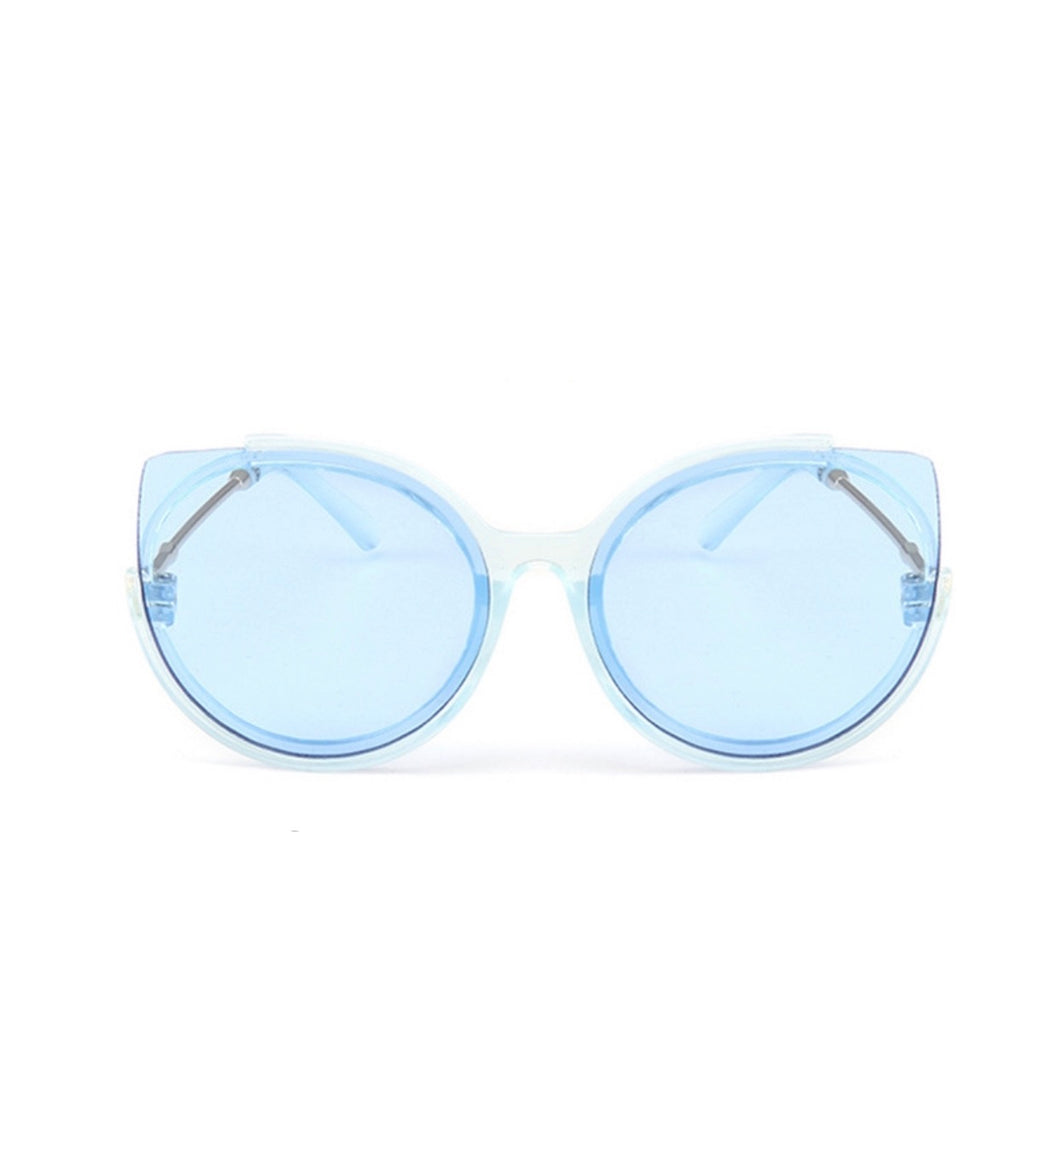 S034 - Frameless Cat Eye Sunglass - Blue